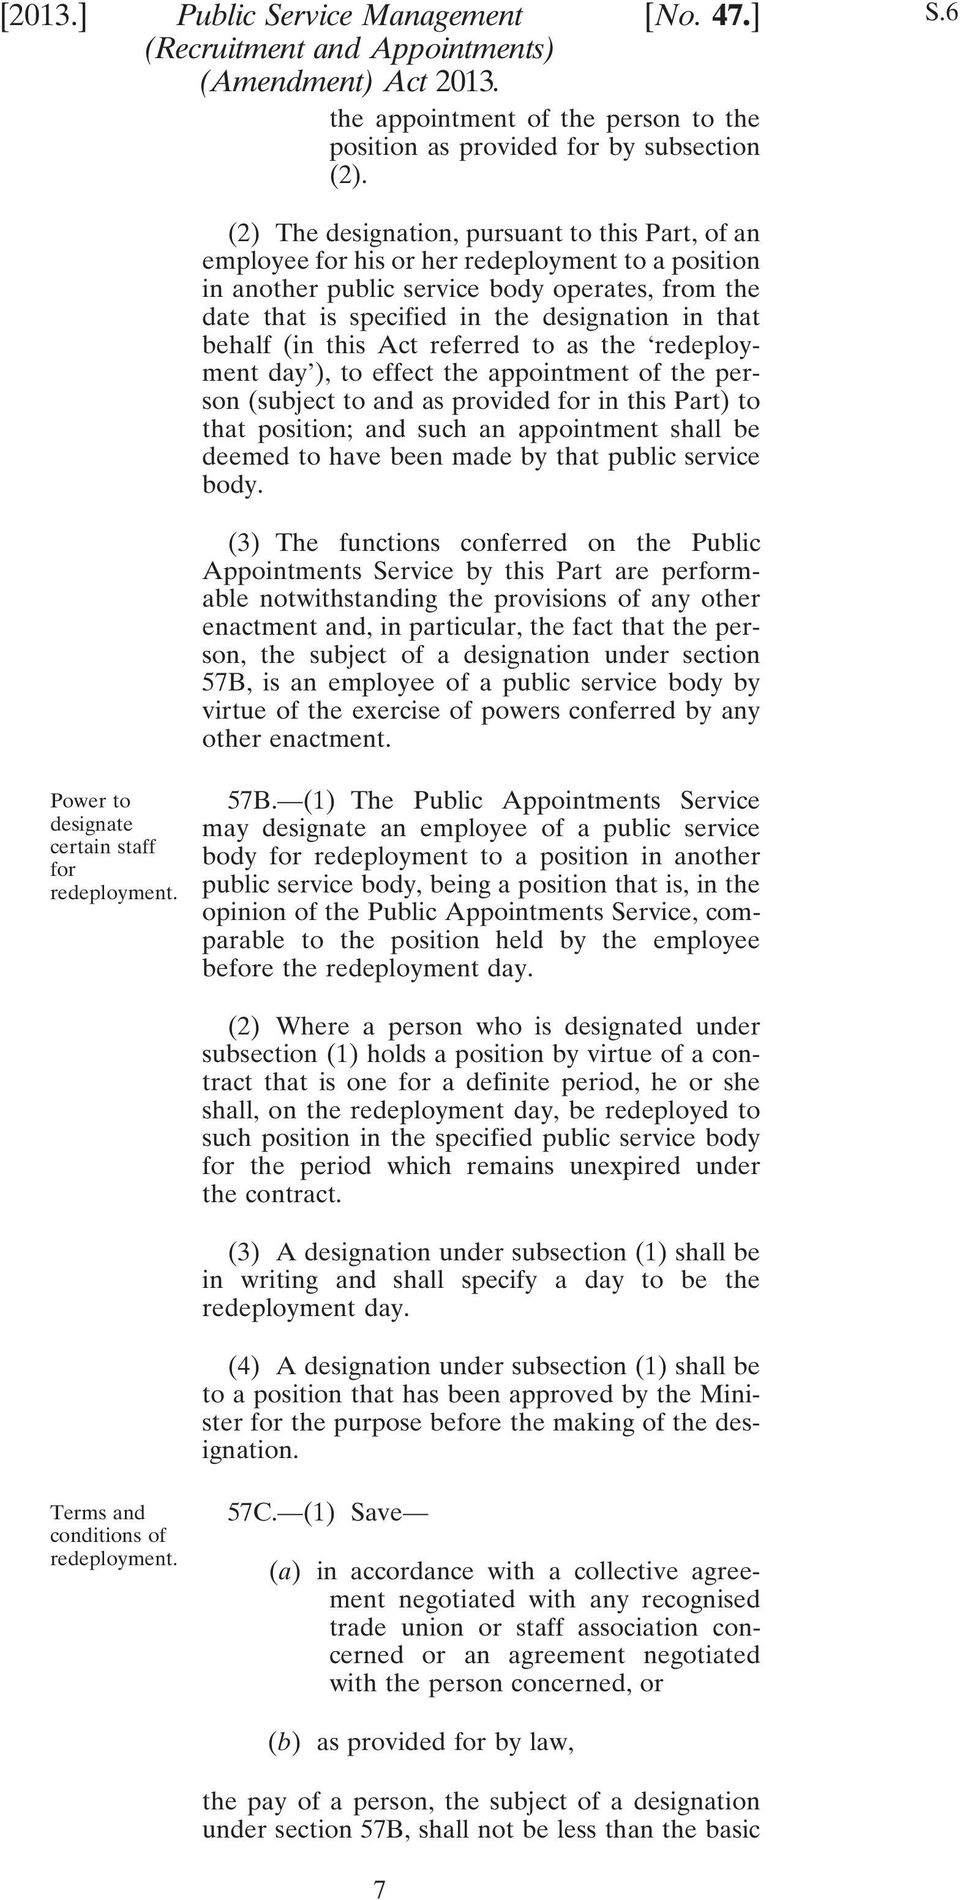 6 (2) The designation, pursuant to this Part, of an employee for his or her redeployment to a position in another public service body operates, from the date that is specified in the designation in